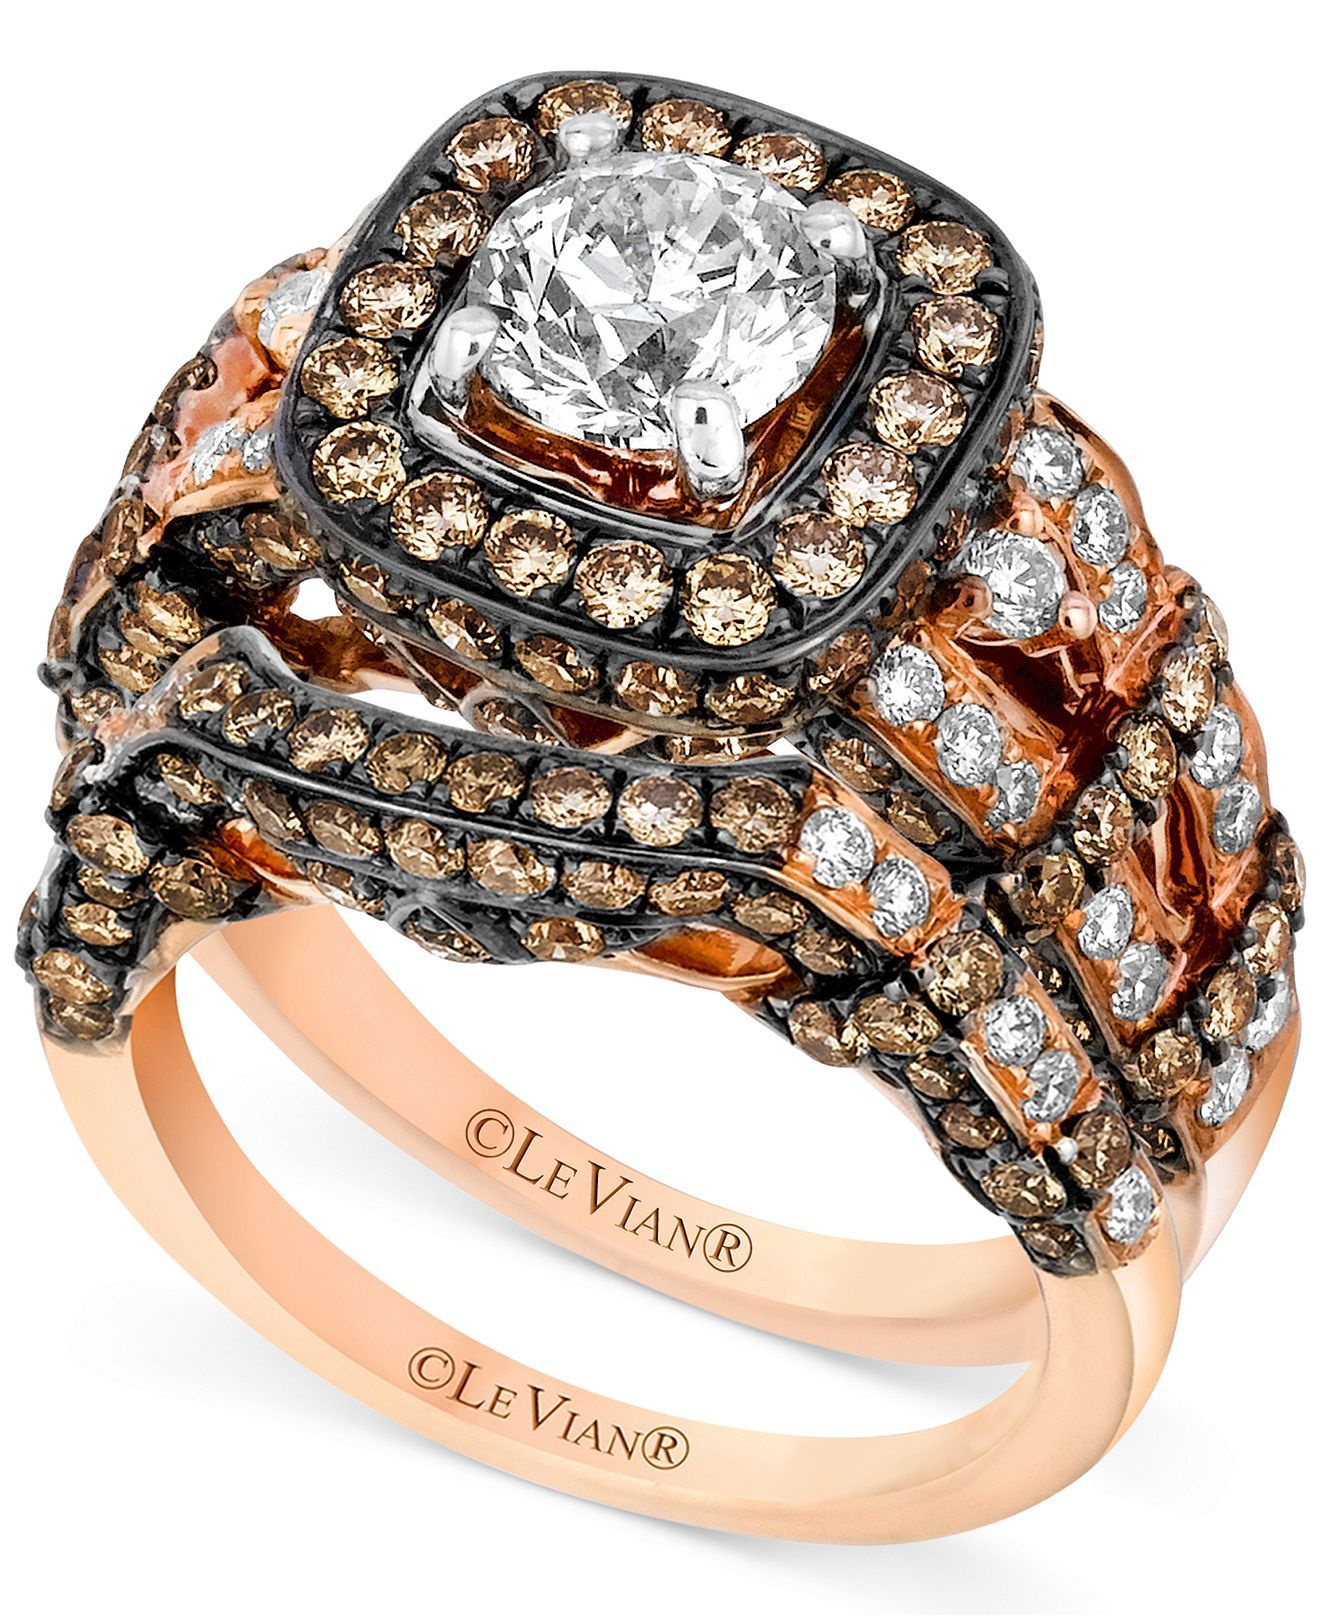 le vian 14k rose gold ring set white diamond 1 3 8 ct t w and